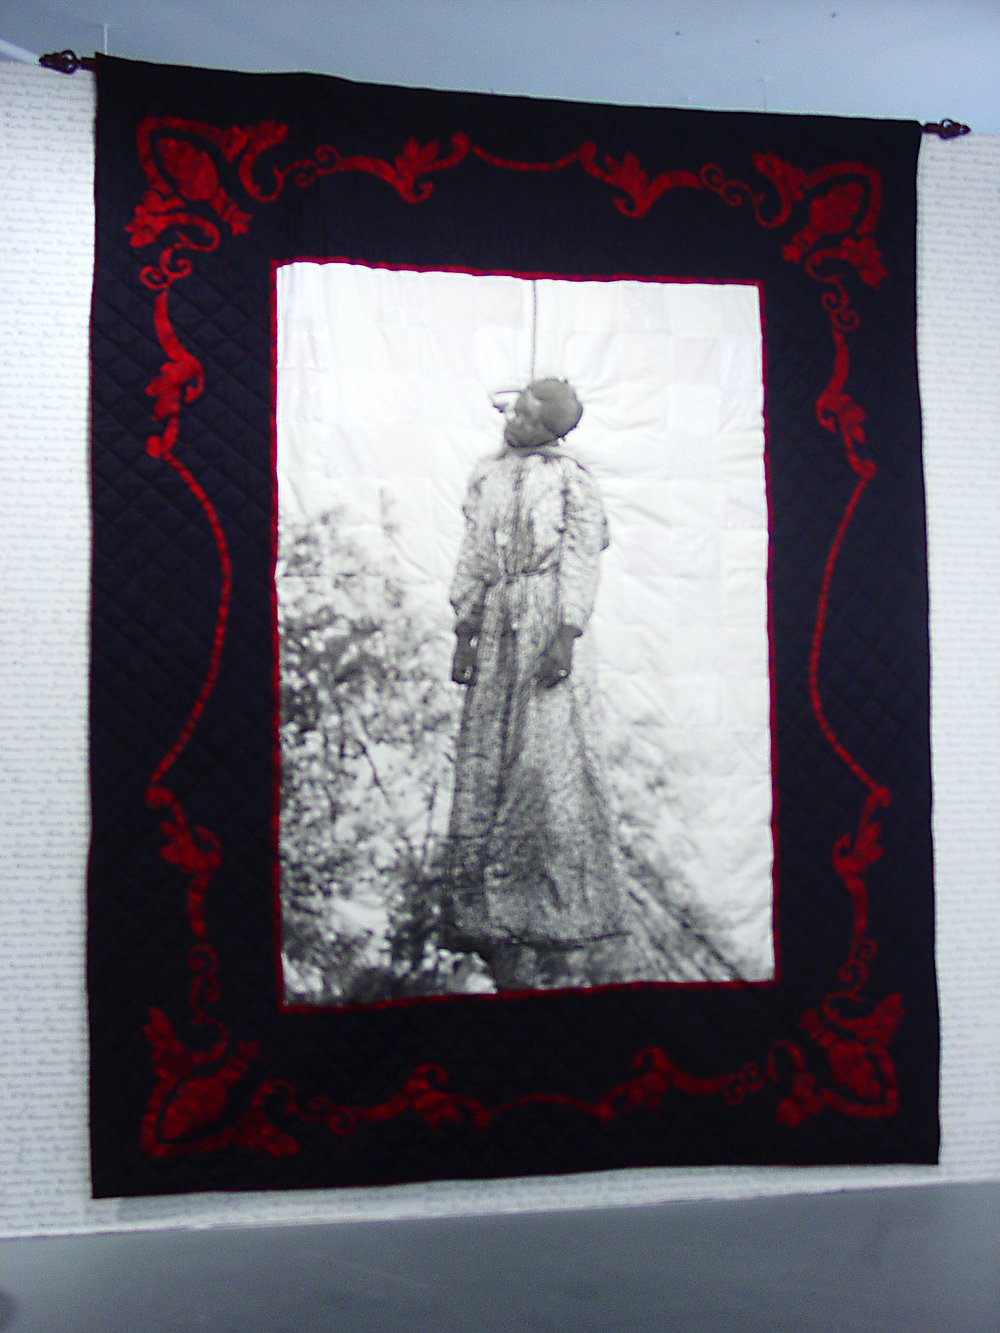 Her Name was Laura Nelson: Quilt I, 2004. © LaShawnda Crowe Storm, used with permission of the artist.